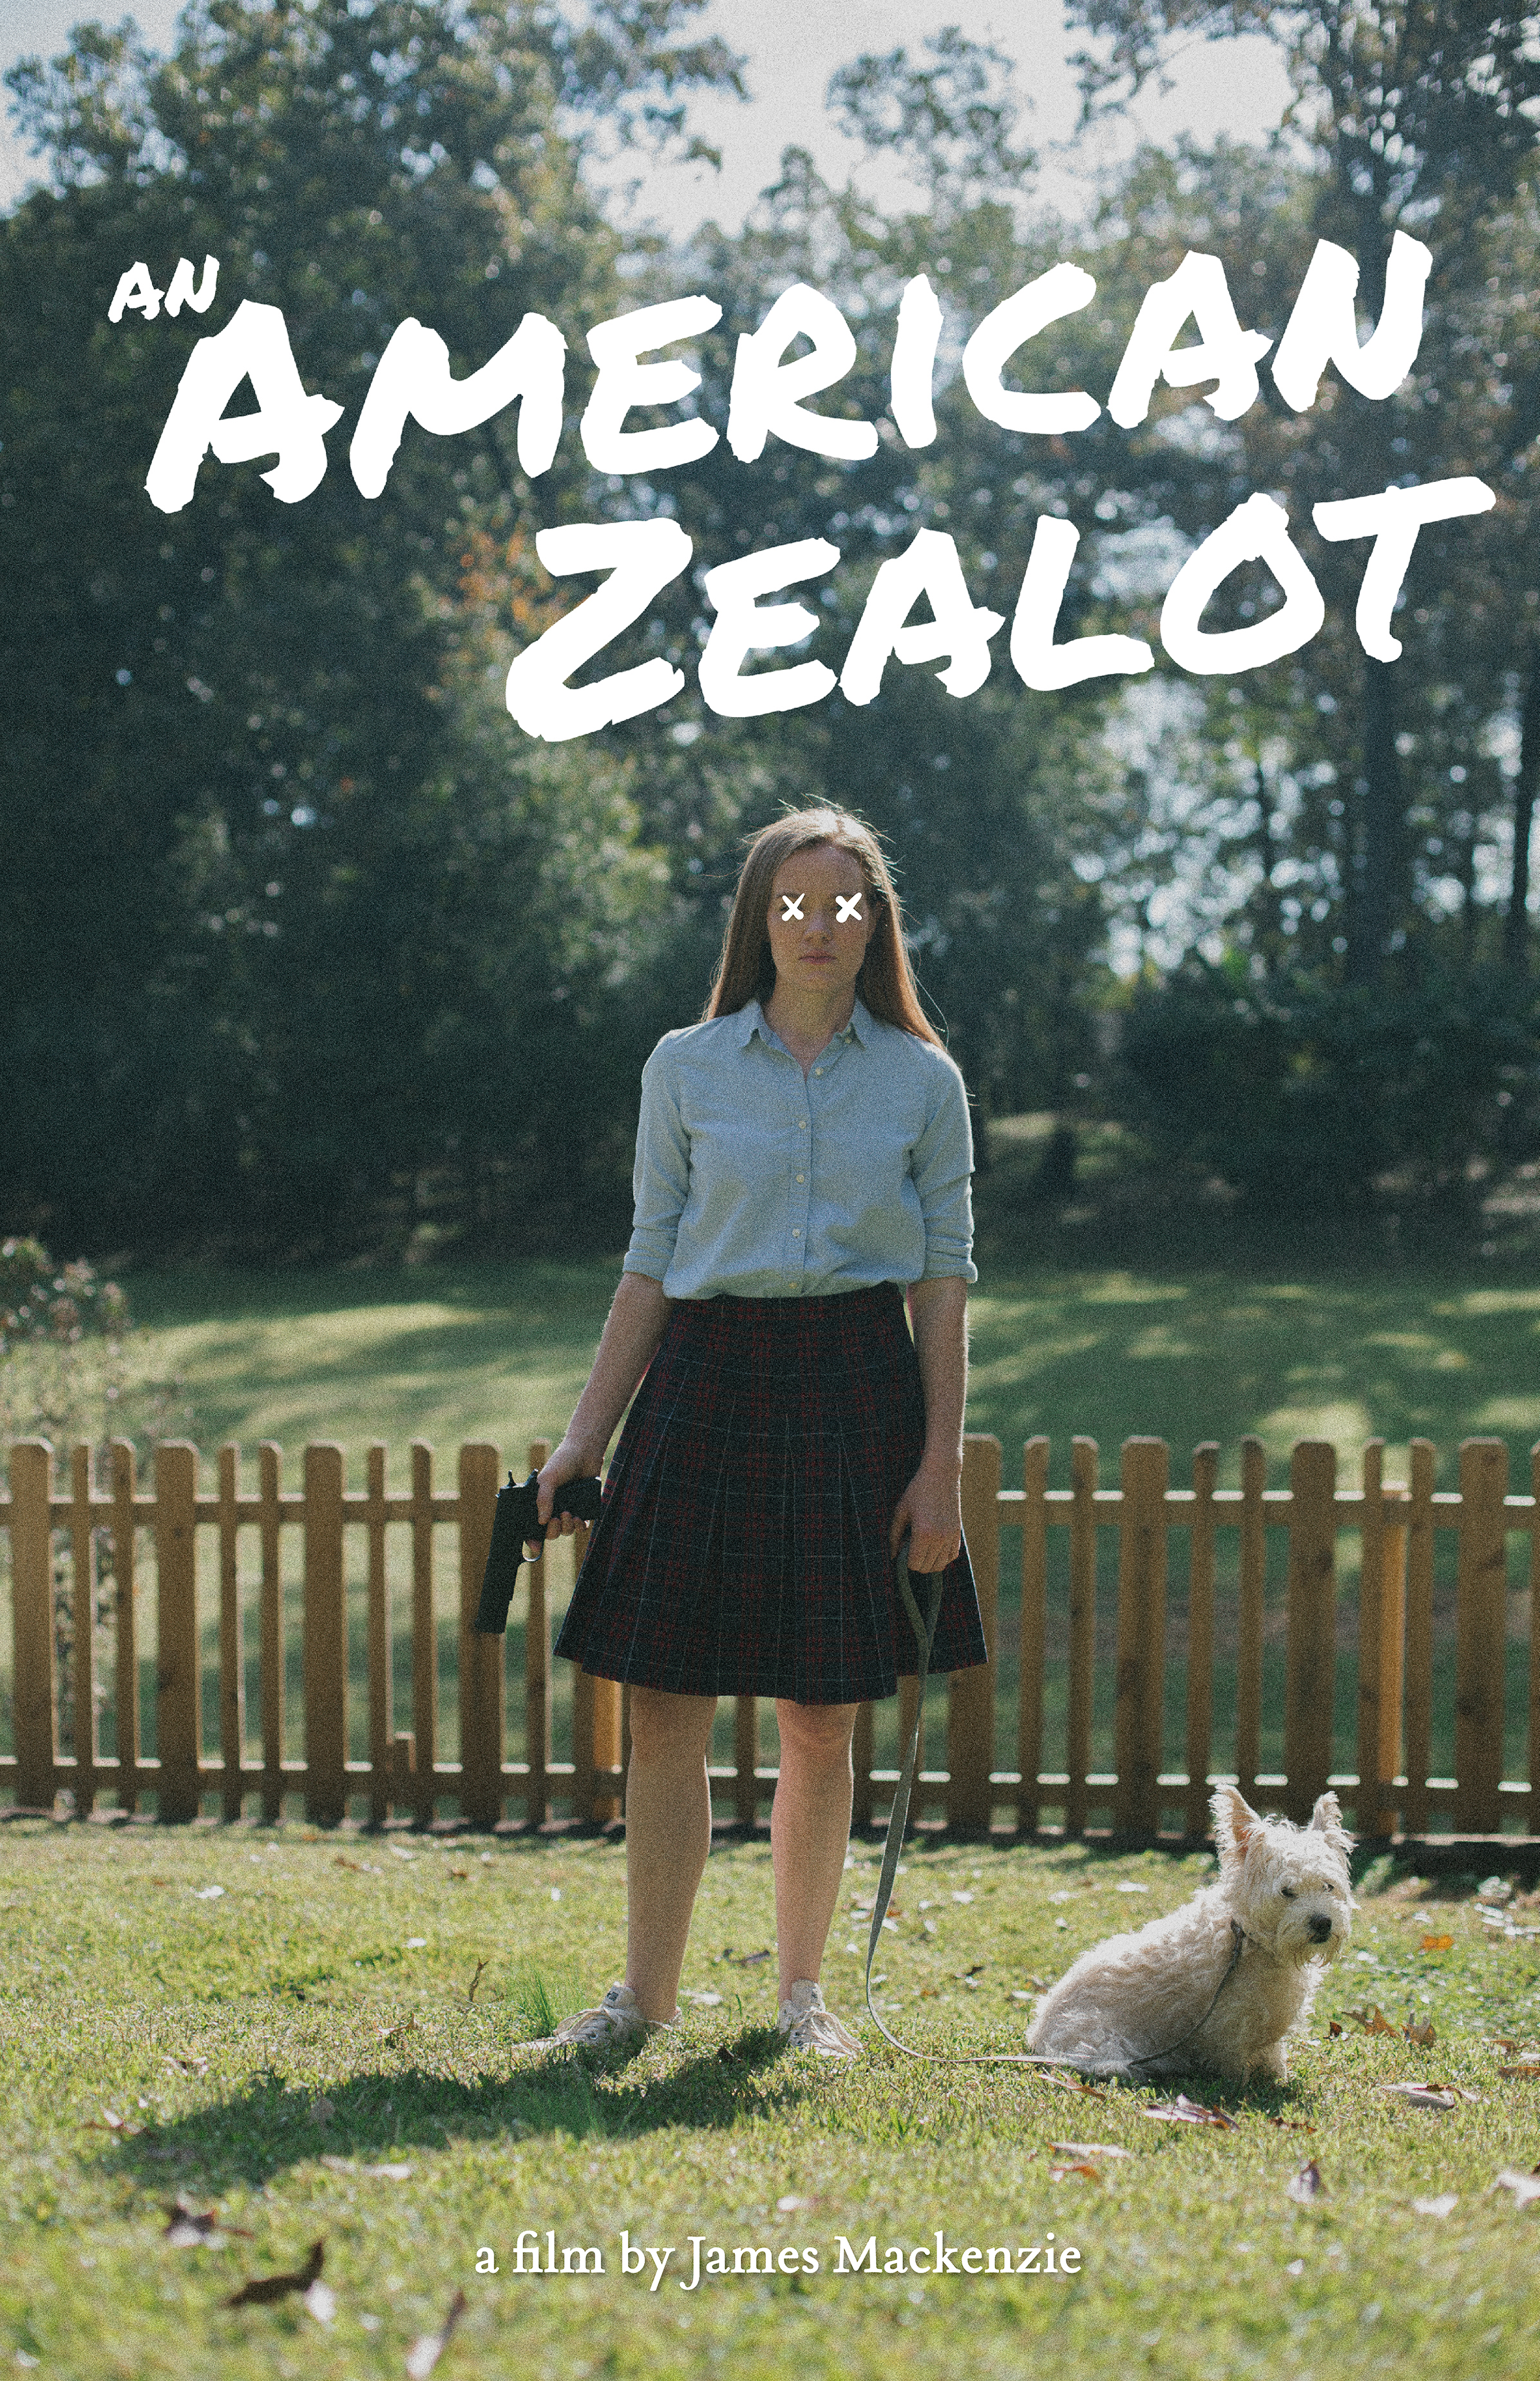 An American Zealot poster image